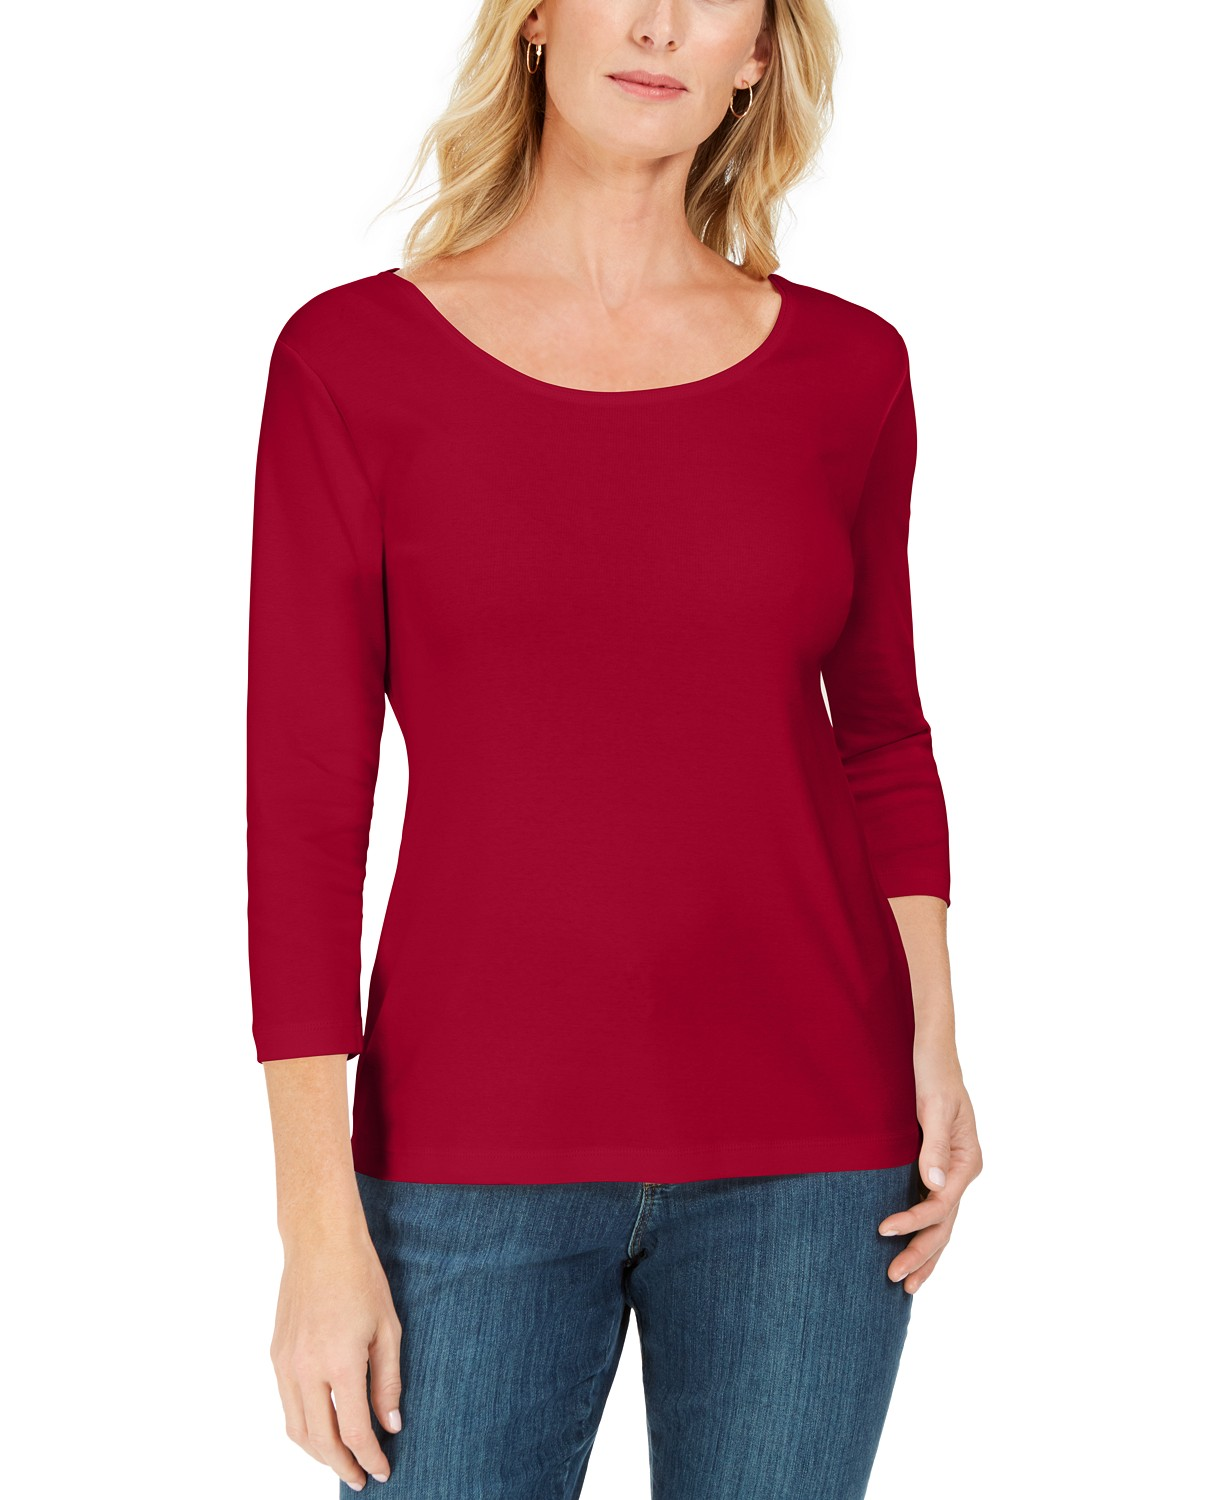 Karen Scott Cotton 3/4-Sleeve Top, Created for Macy's